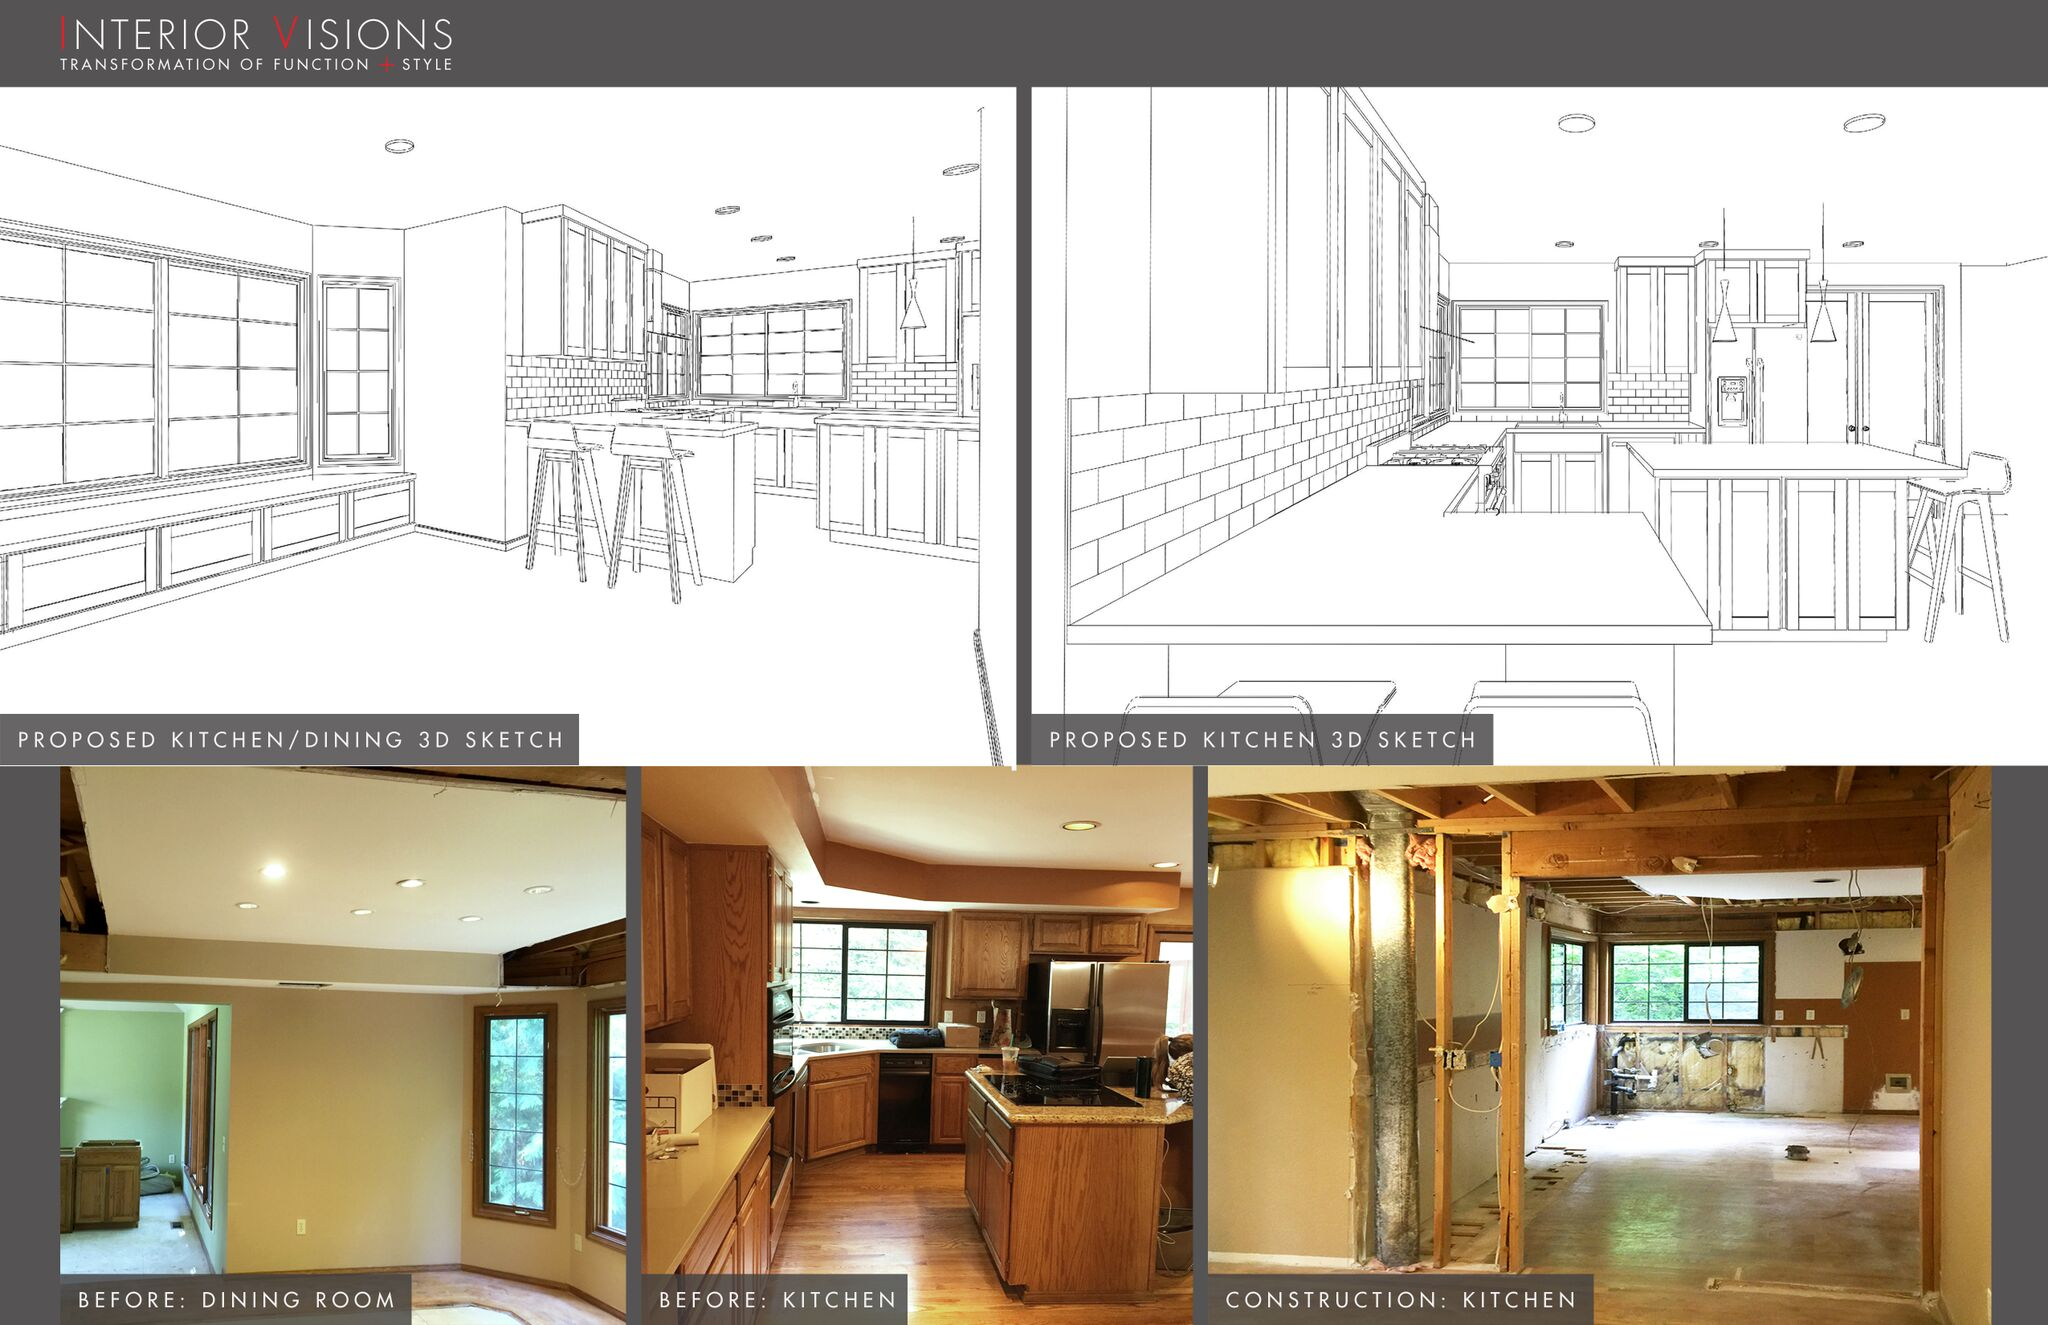 Sketches Source Interior Visions Llc